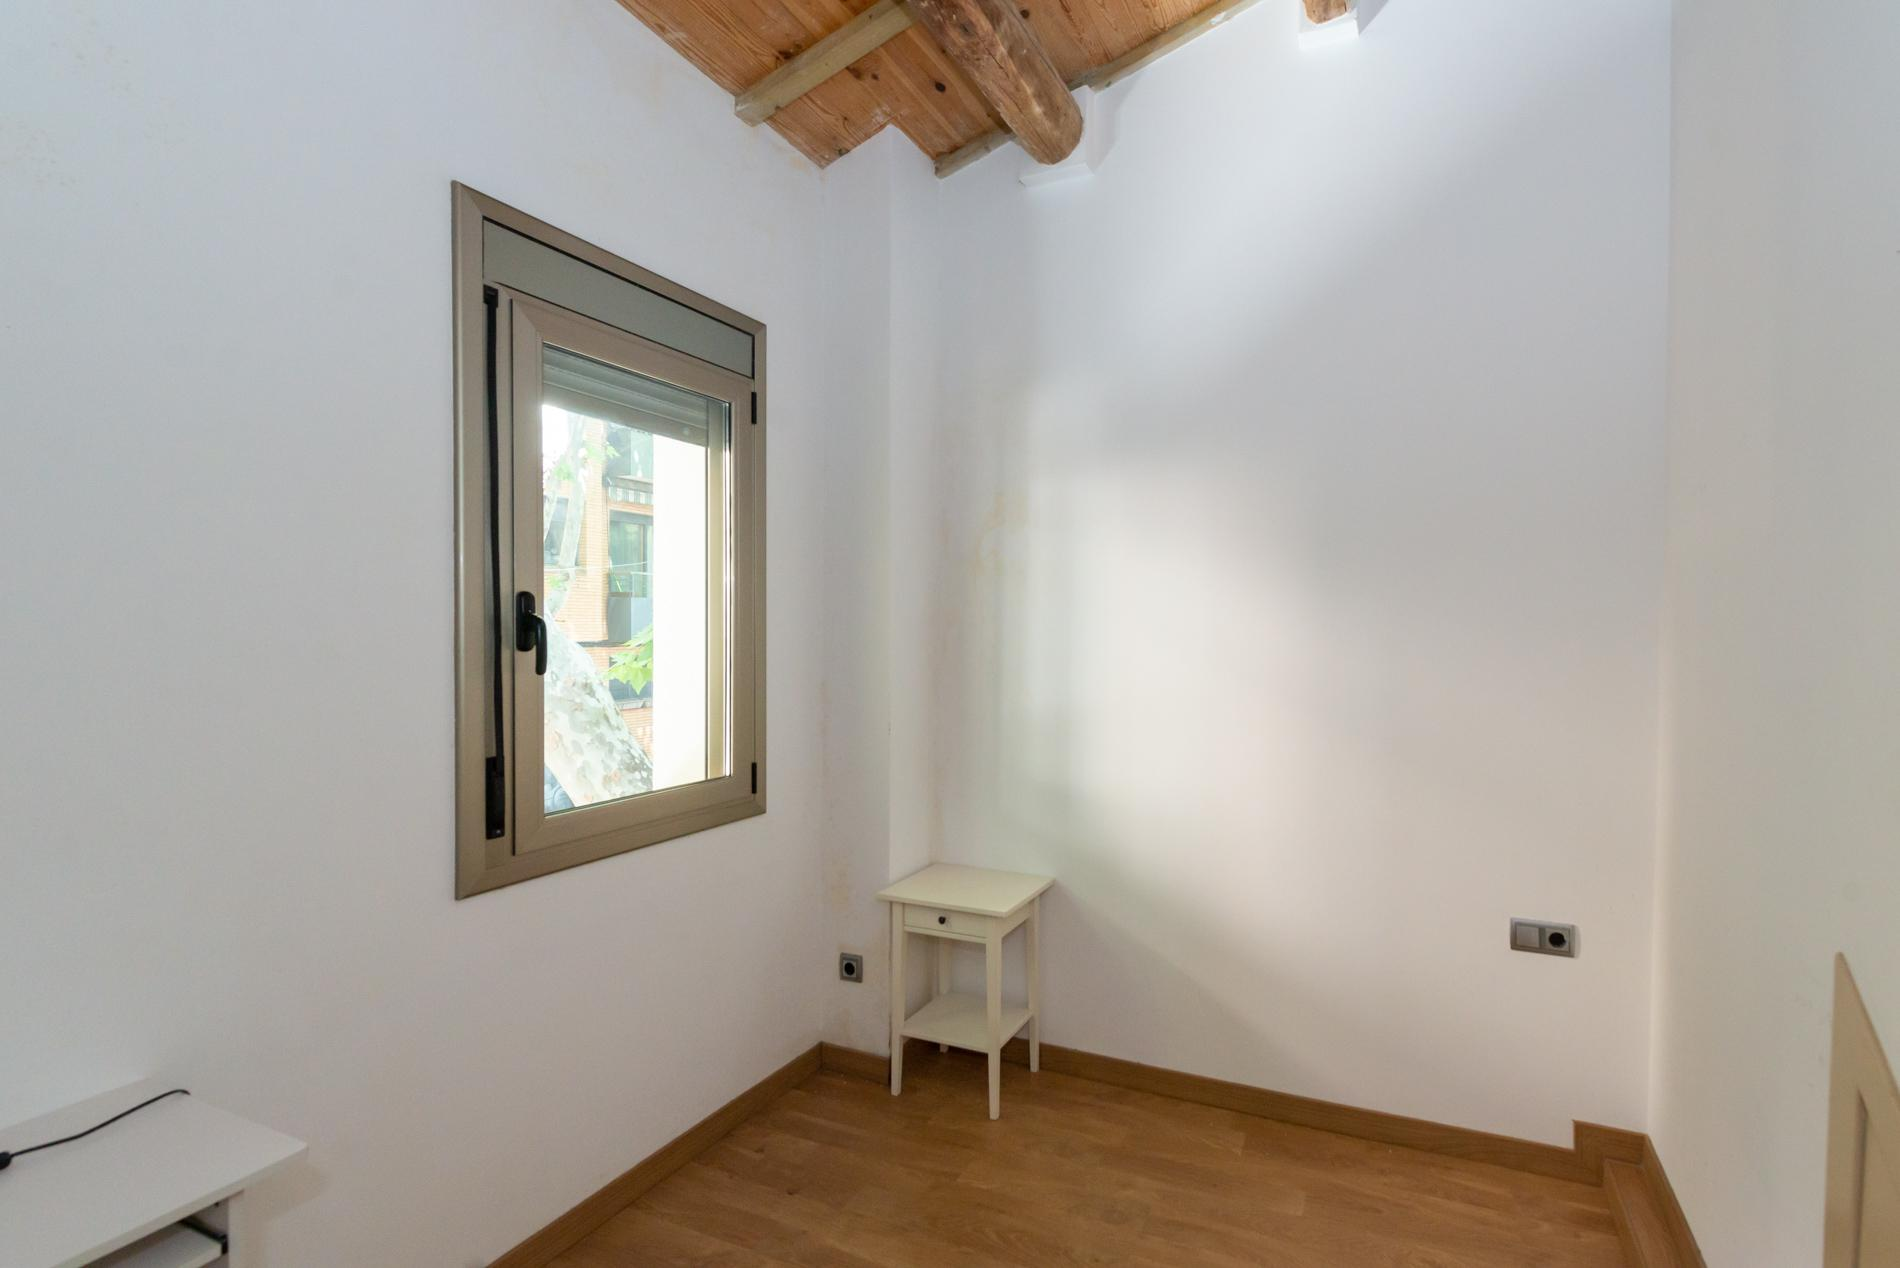 239277 Semi-detached house for sale in Sants-Montjuïc, Sants 21